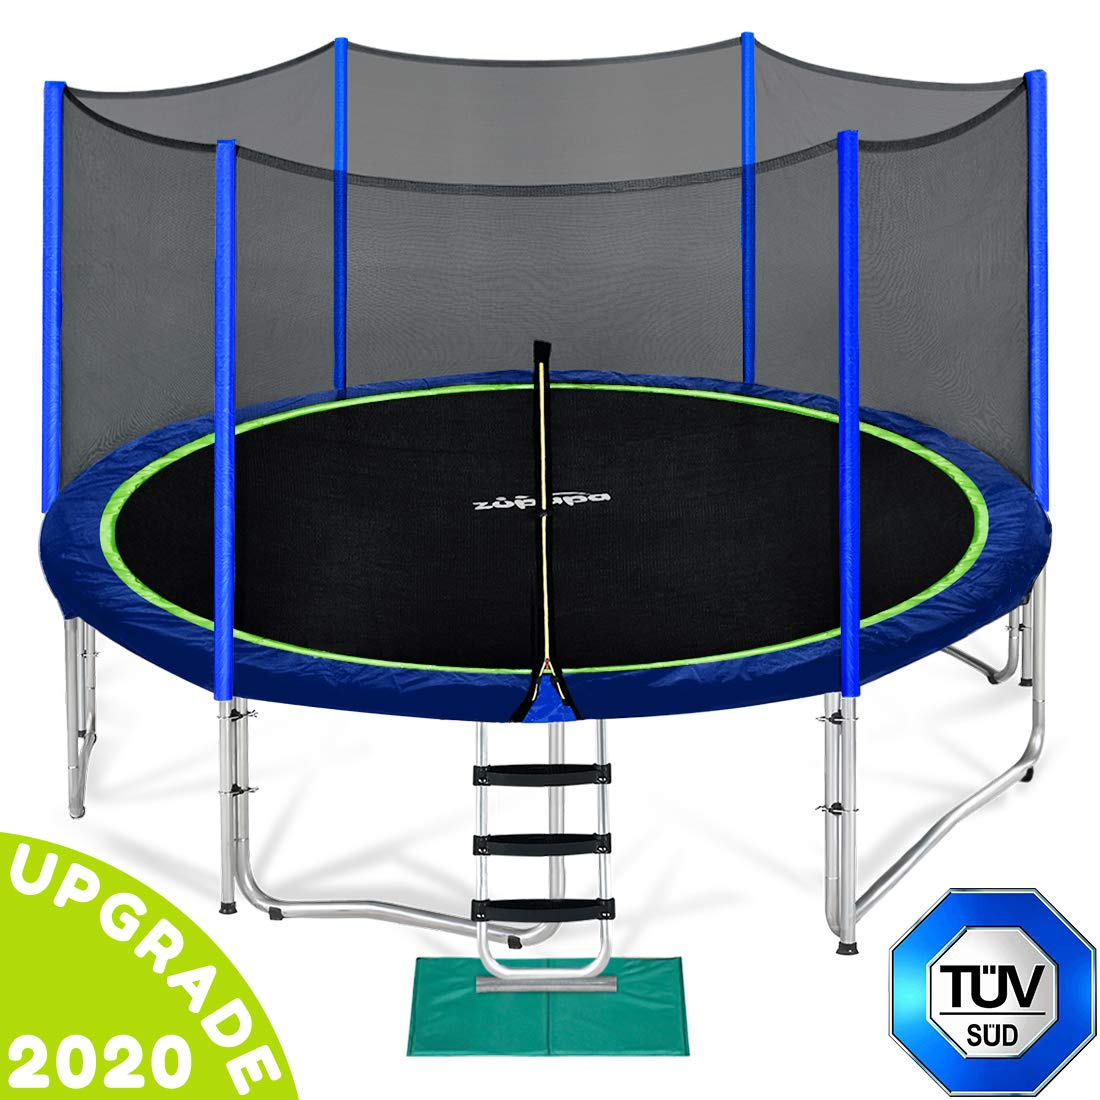 Zupapa 15 14 12 FT TUV Approved Trampoline with Enclosure net and Poles Safety Pad Ladder Jumping Mat Rain Cover Blue